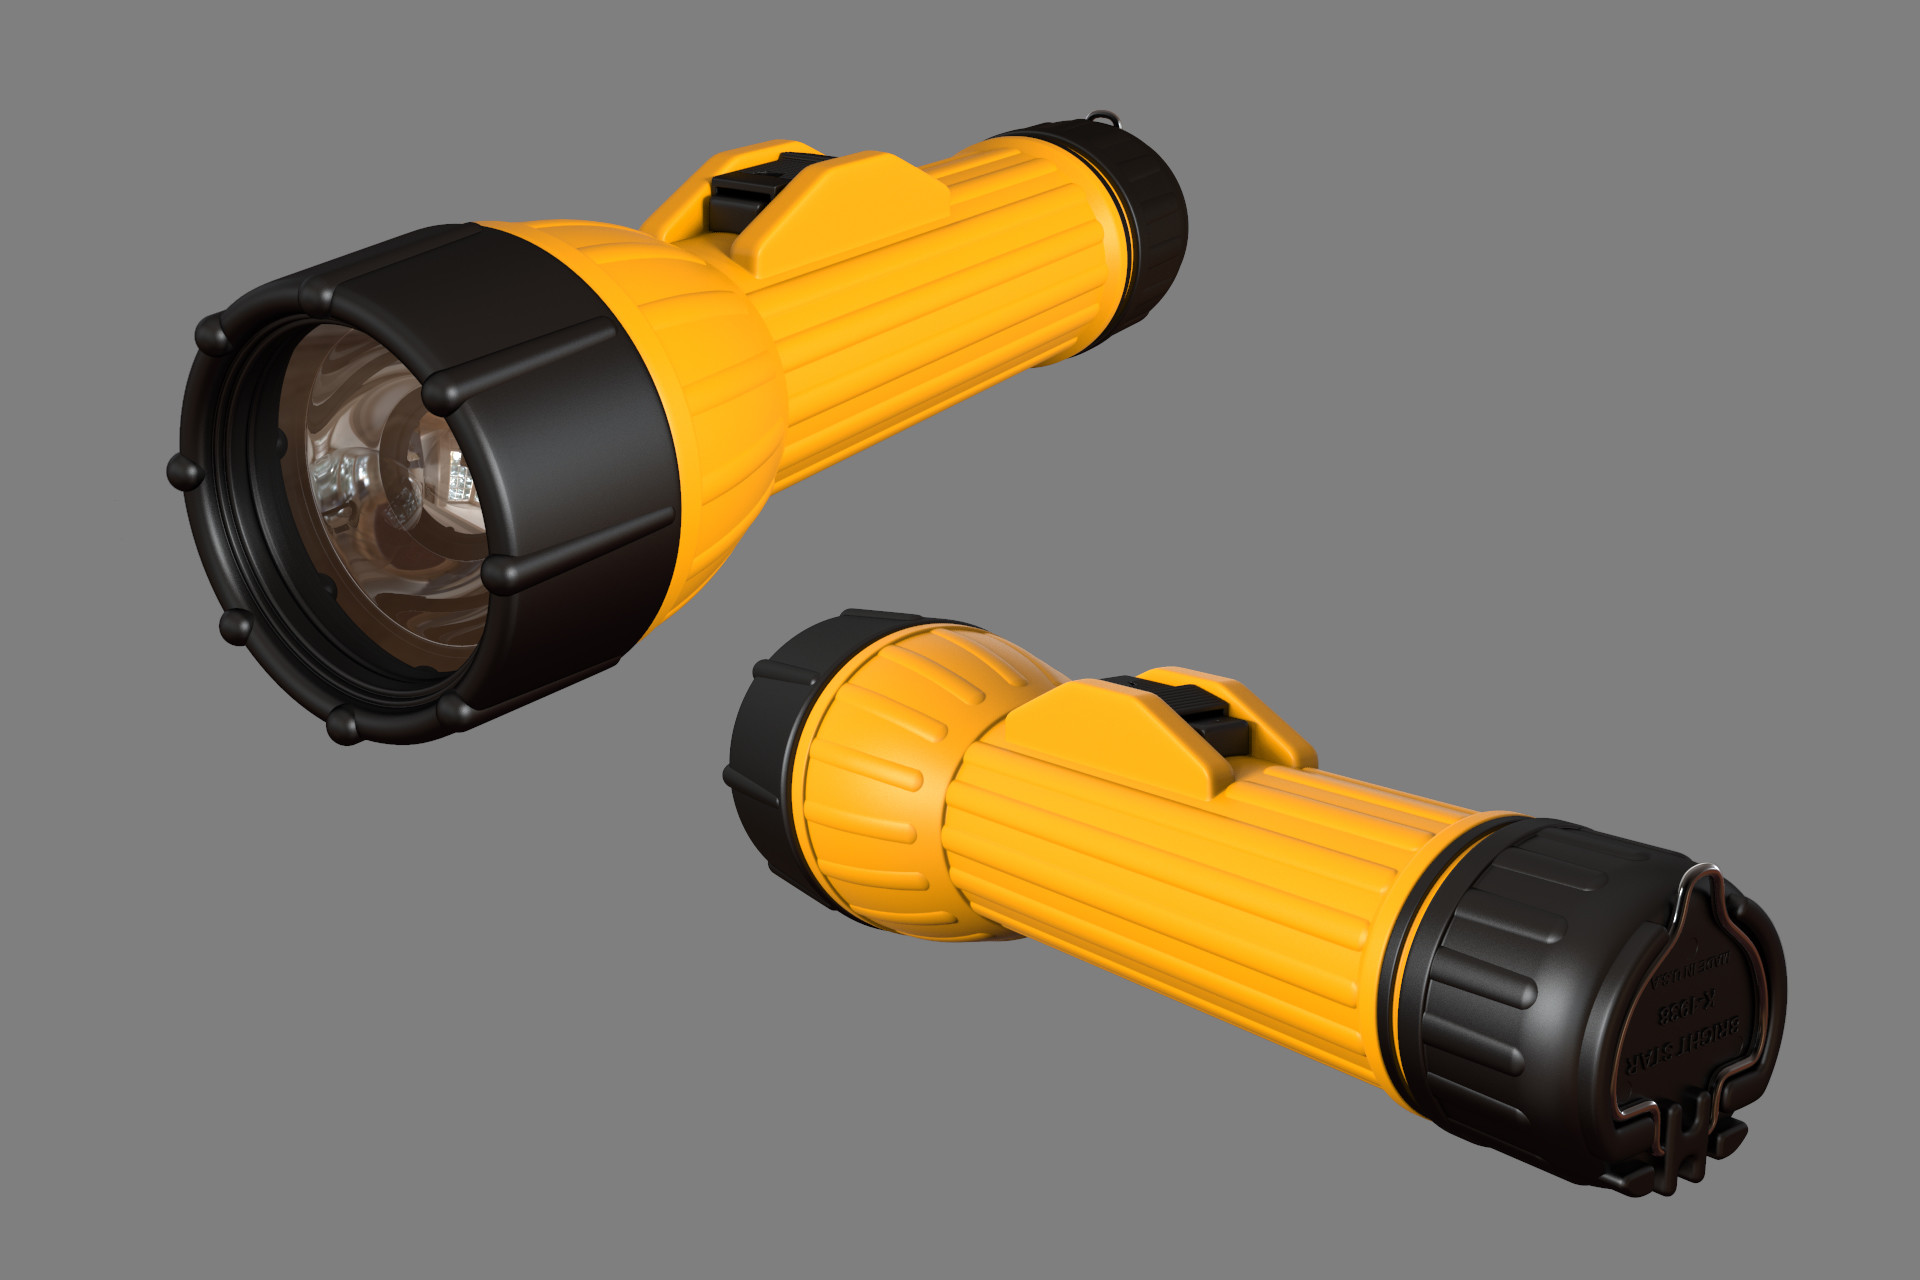 Wayne dalton brightstar2217flashlight 003